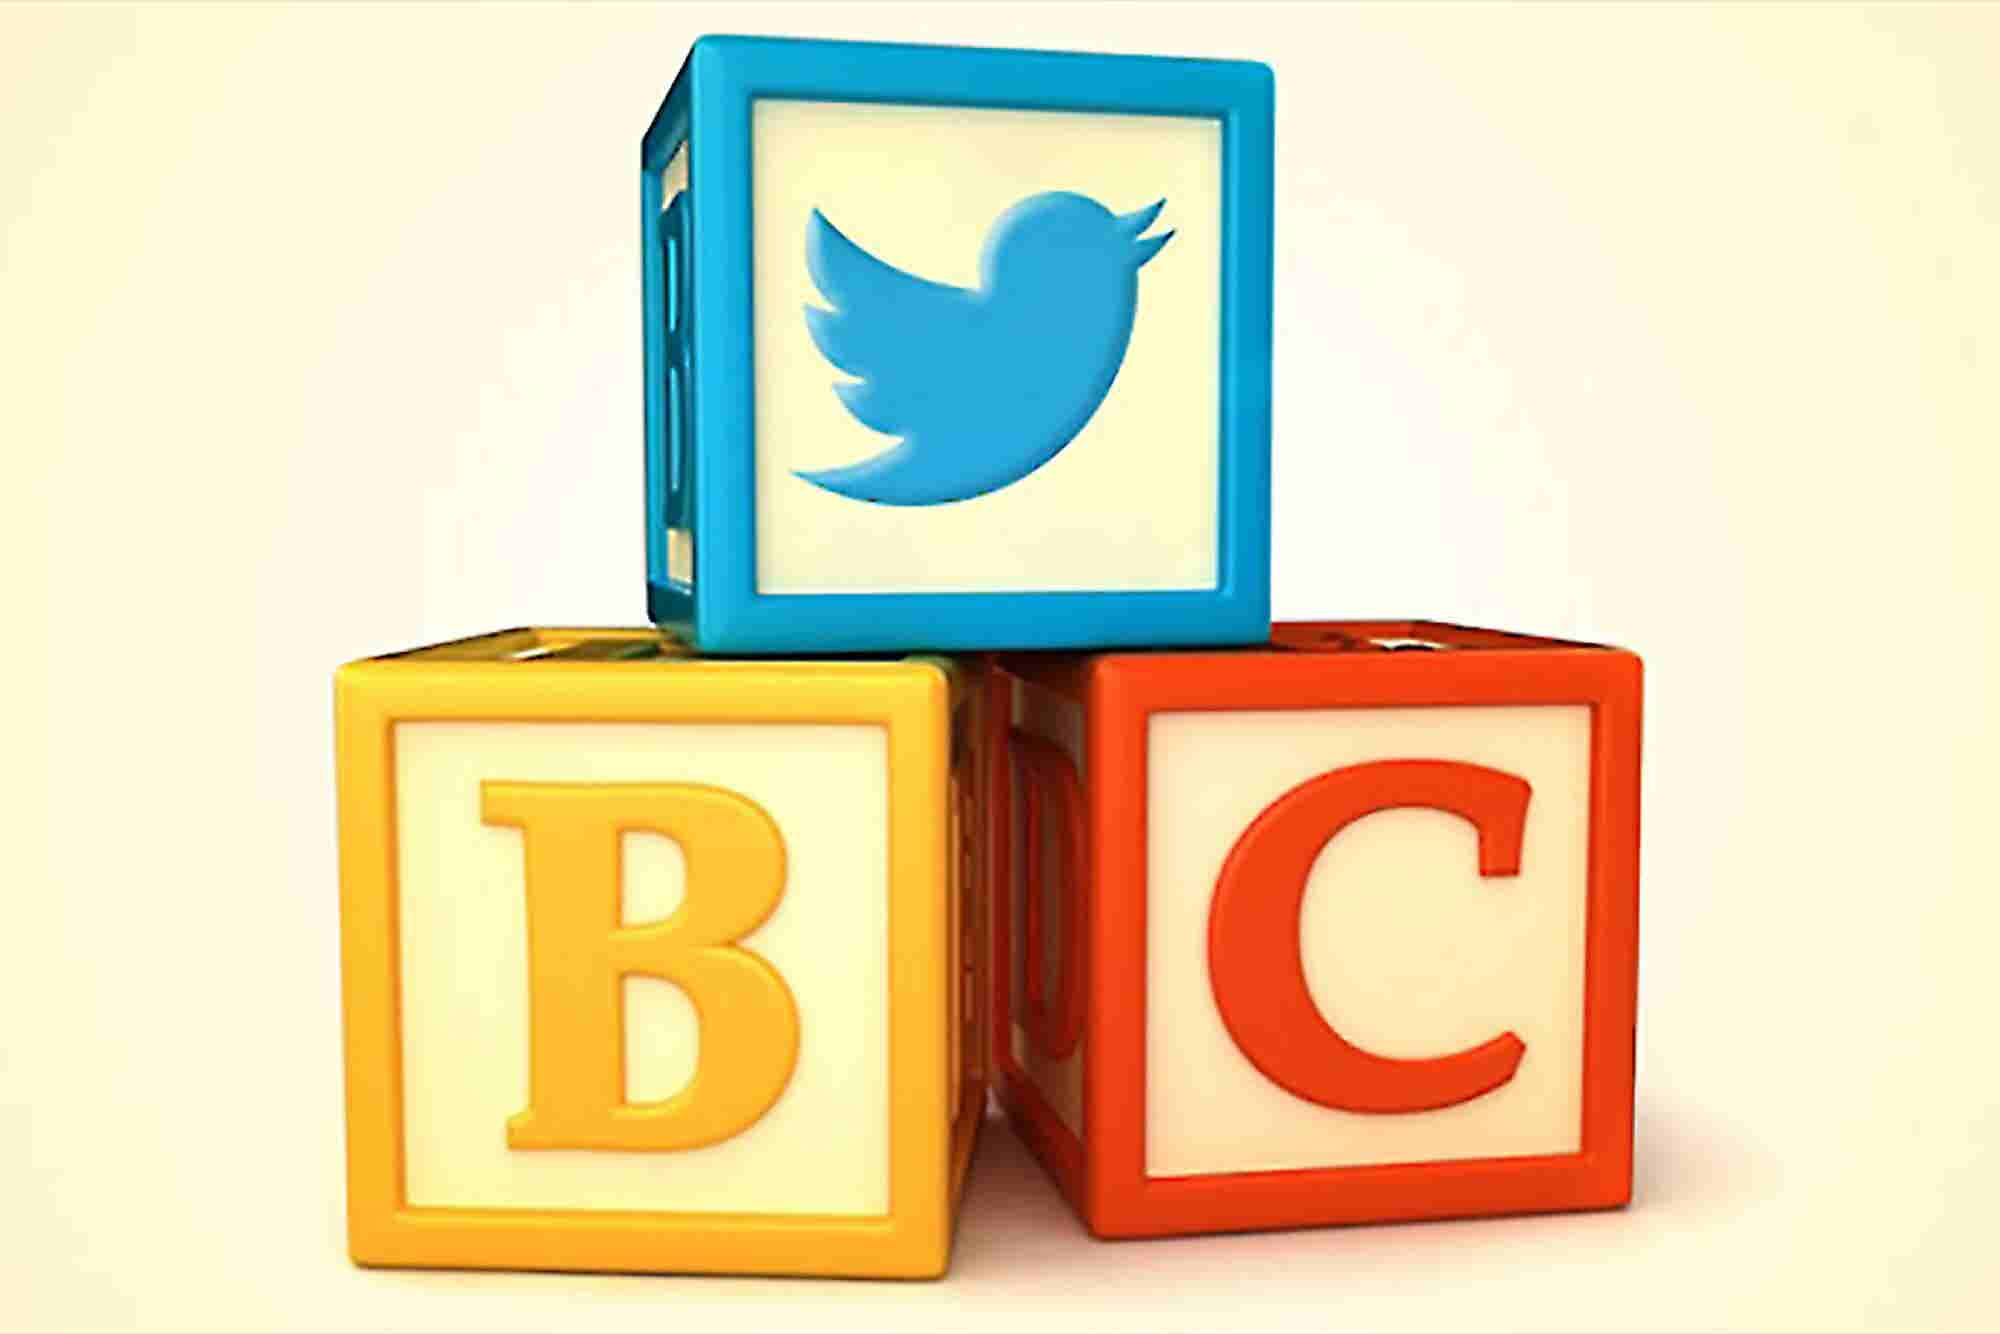 The ABCs of Twitter, Part I